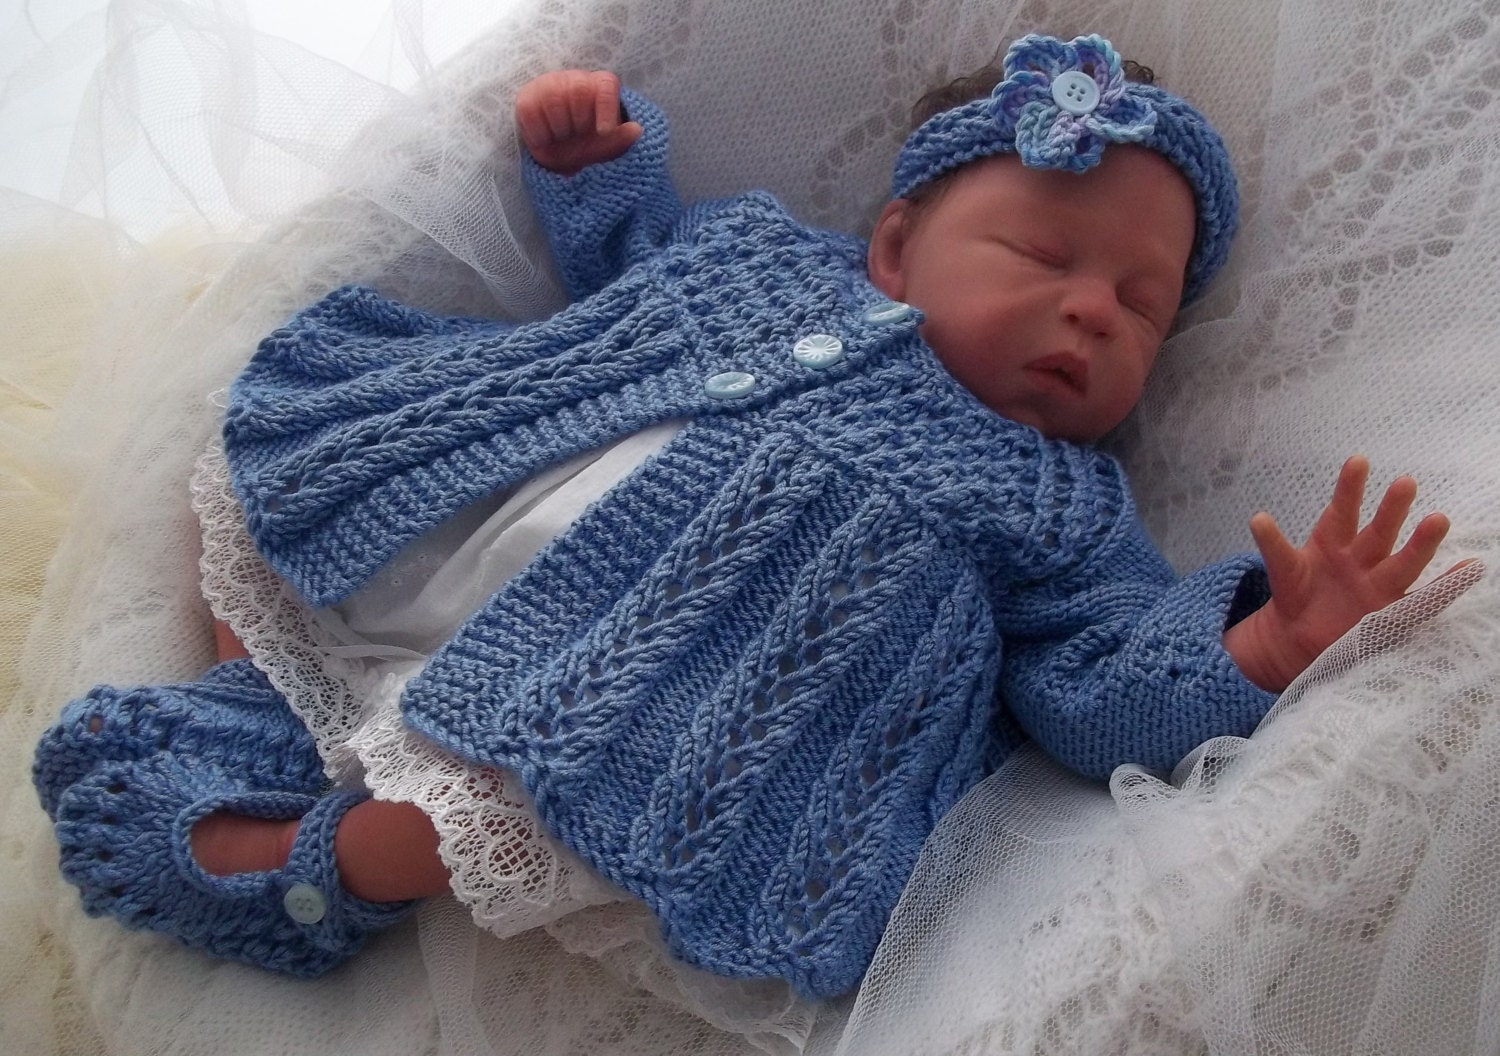 Knitting Sweater For Baby : Baby knitting pattern download girls